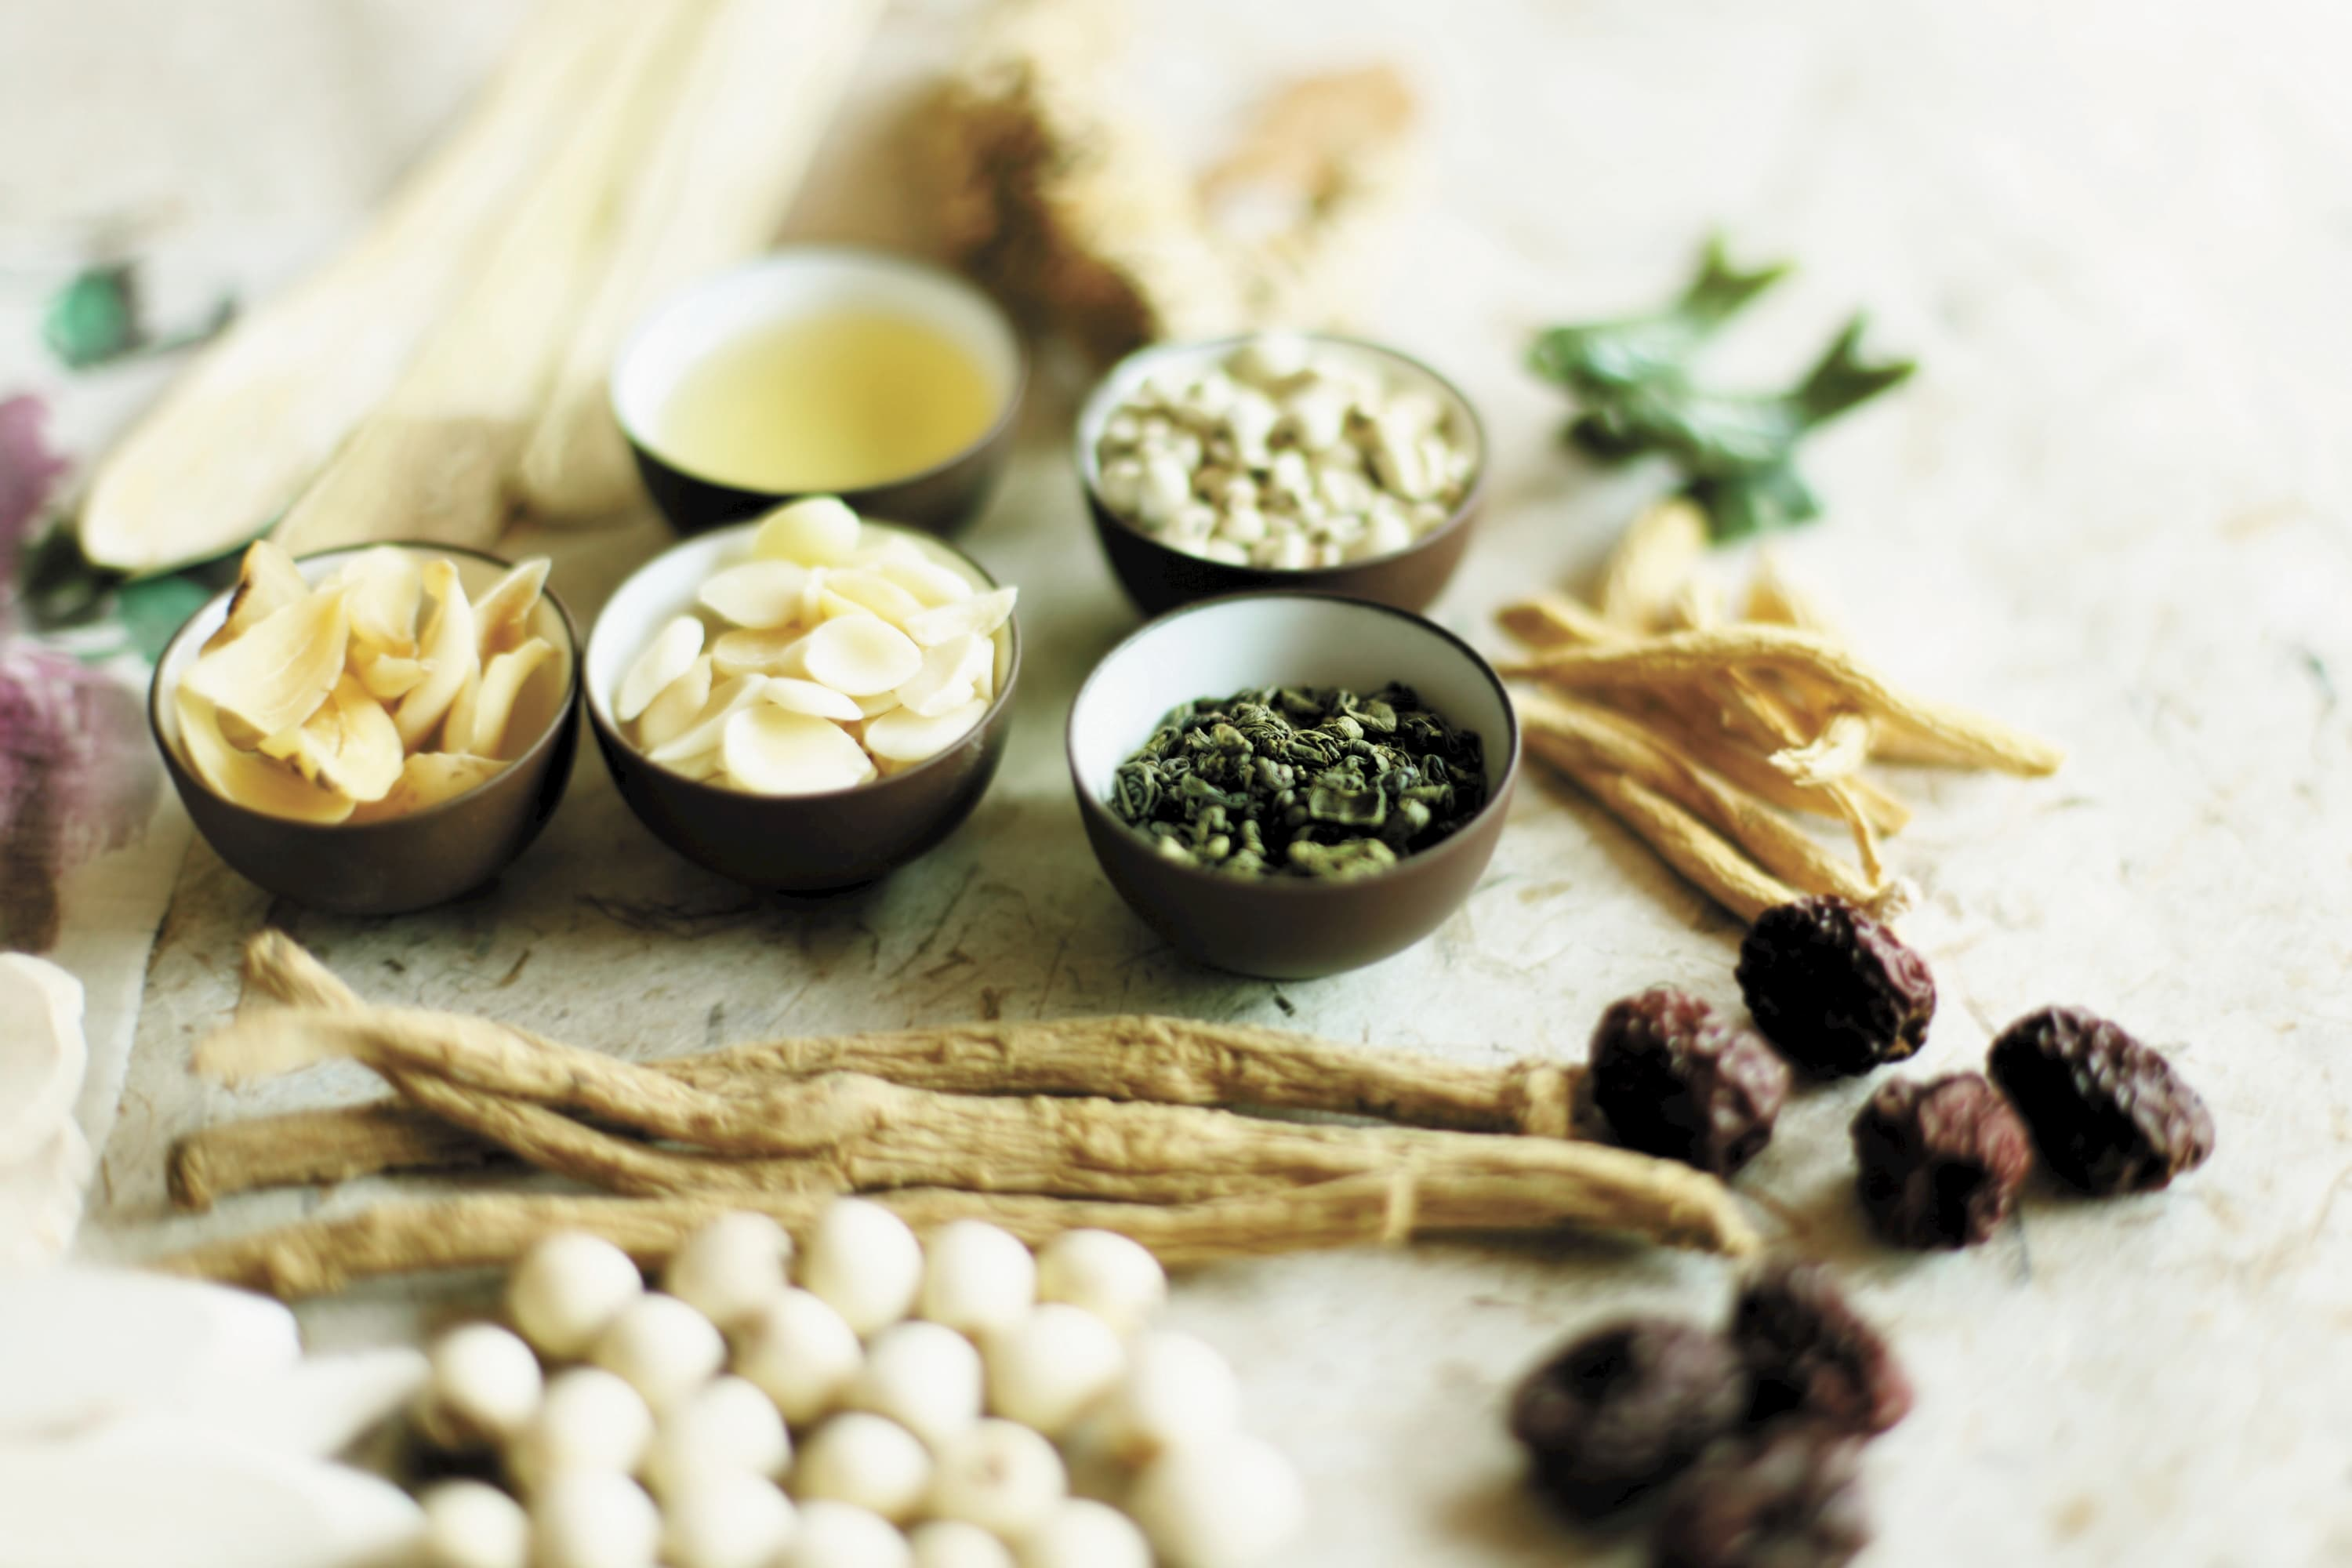 Herbal formulas for modern conditions